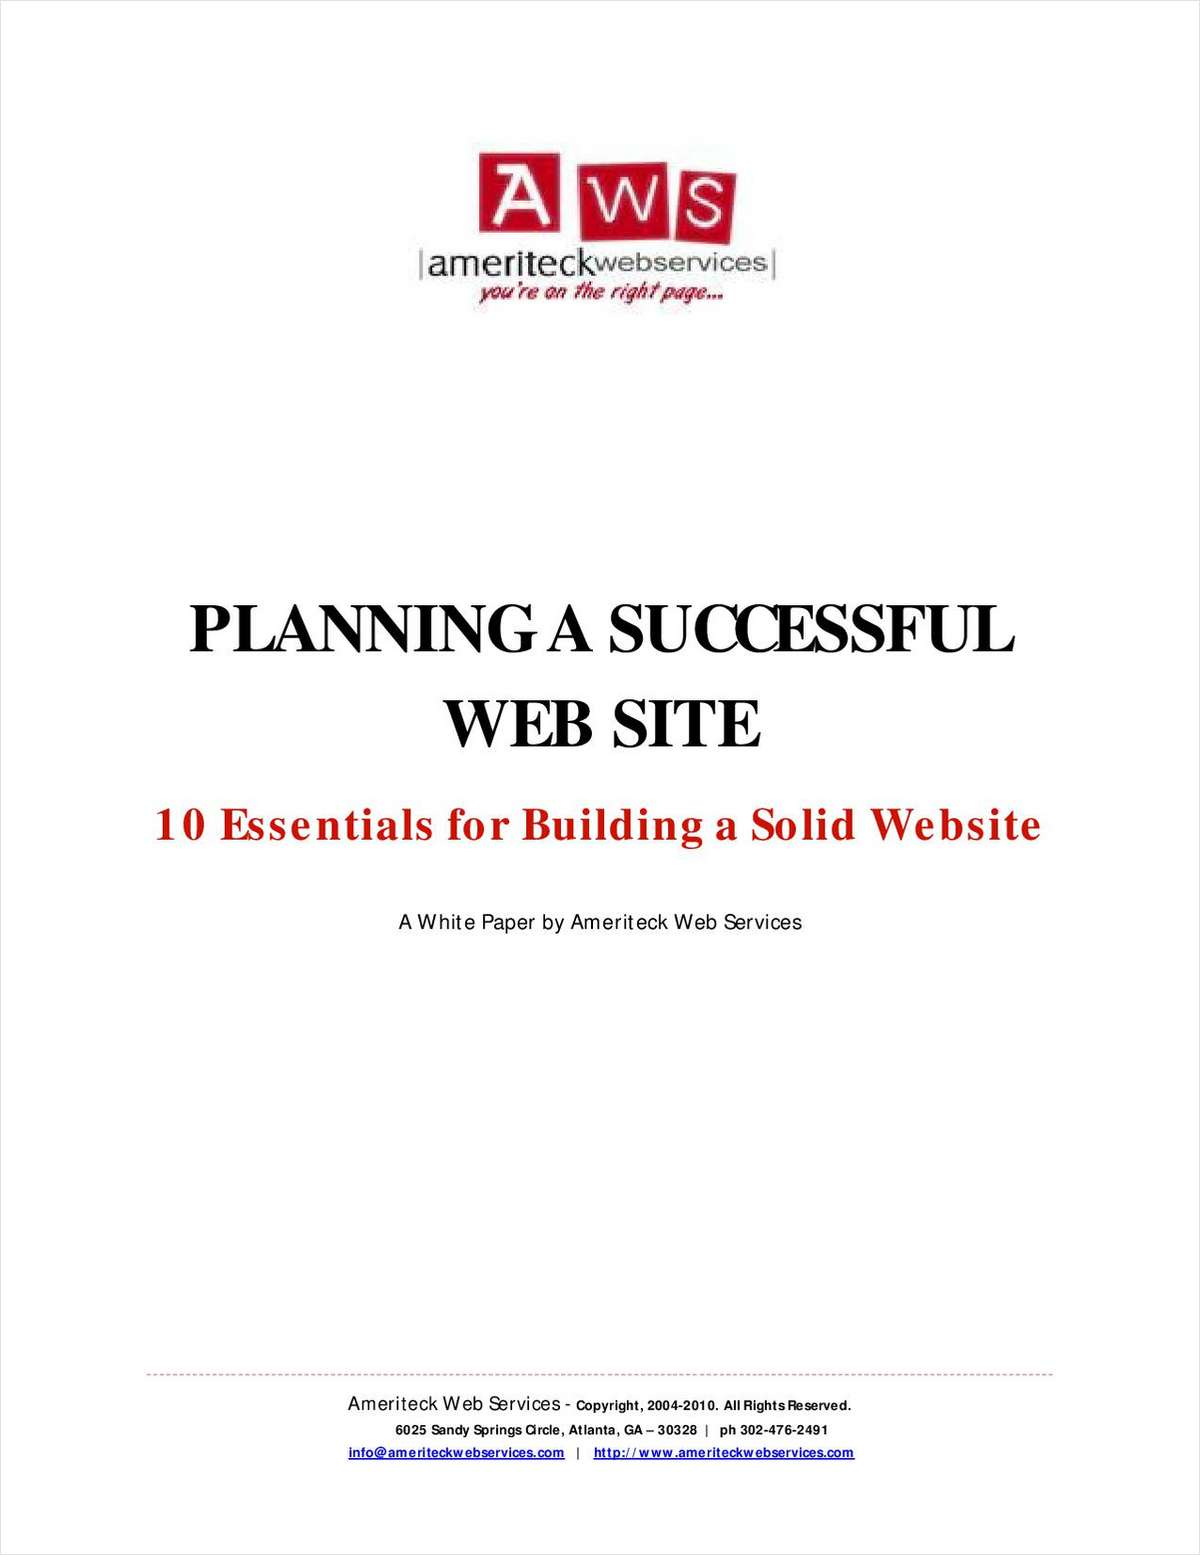 10 Essentials for Building a Solid Website